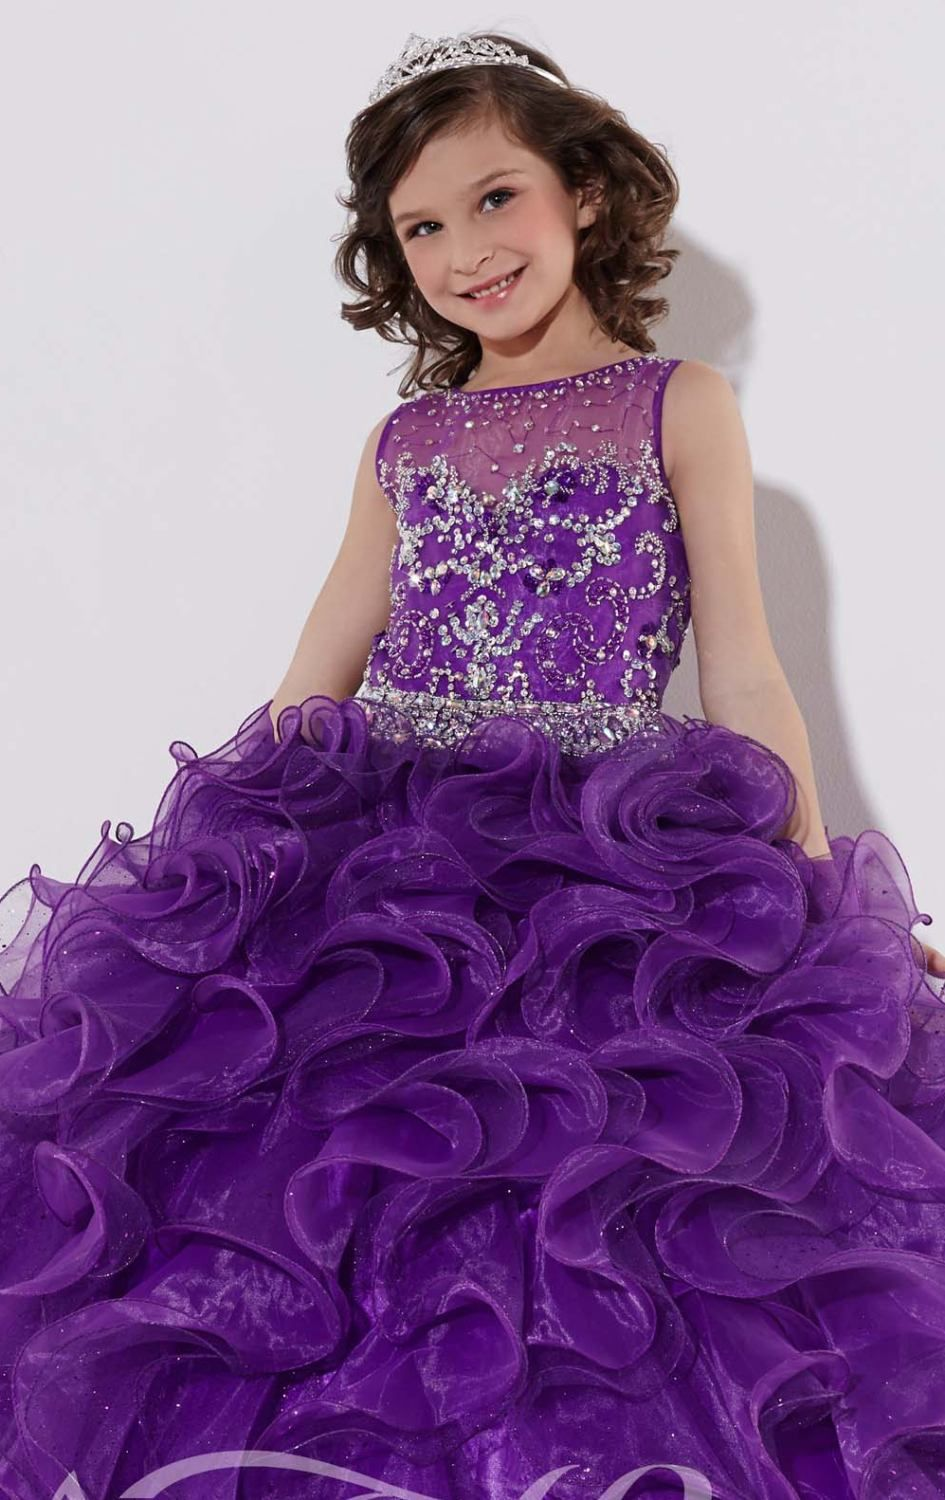 Tiffany Princess 13402 by Tiffany Princess | Pageant couture ...